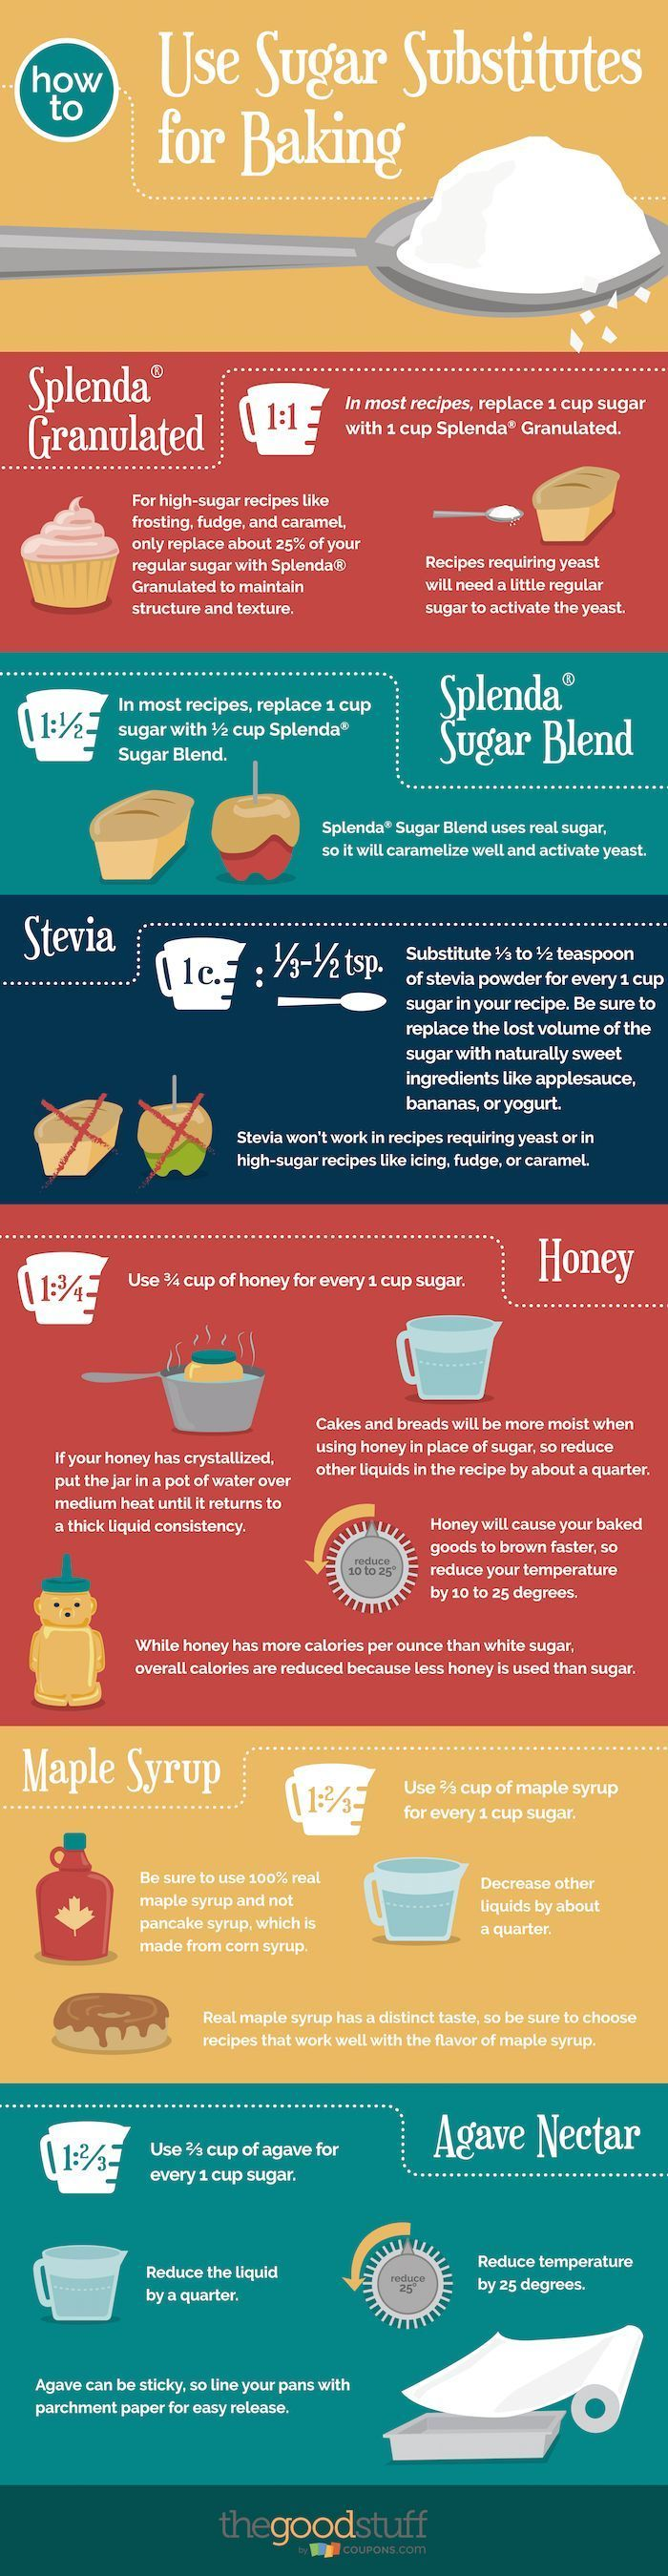 Ever wondered how to use sugar substitutes for baking? Check out our guide for swapping in Splenda, honey, maple syrup, and agave nectar for healthy treats!